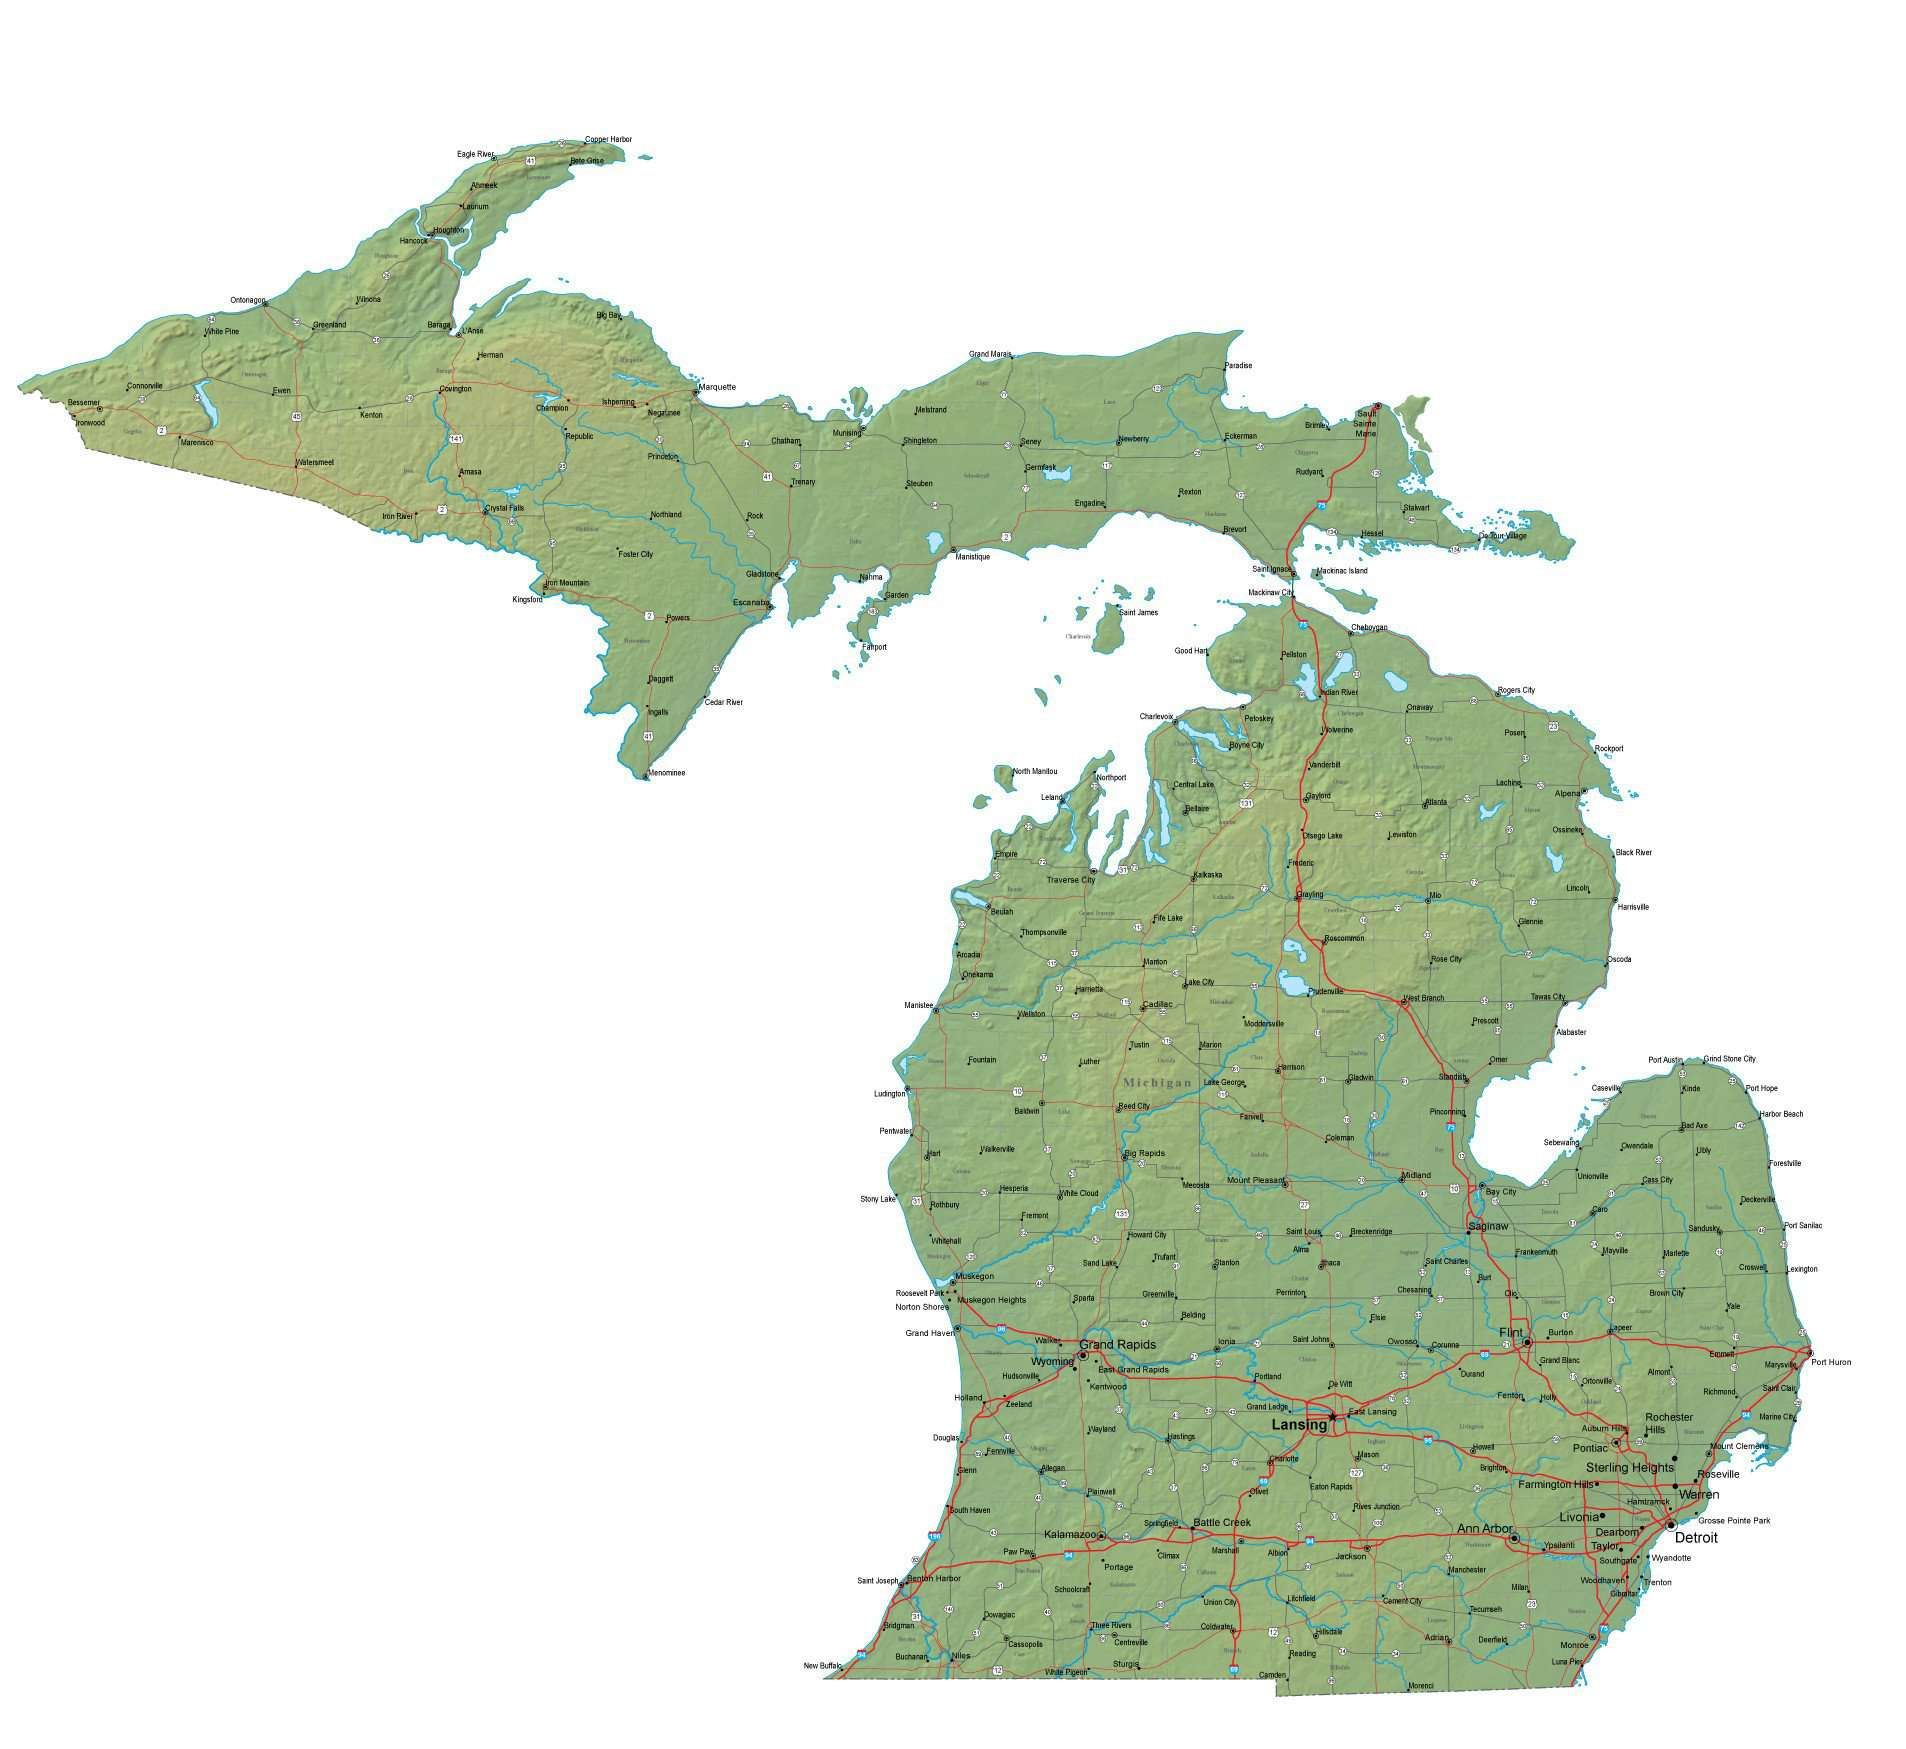 Minnesota Map With Counties Major Cities Roads Rivers Lakes Mi